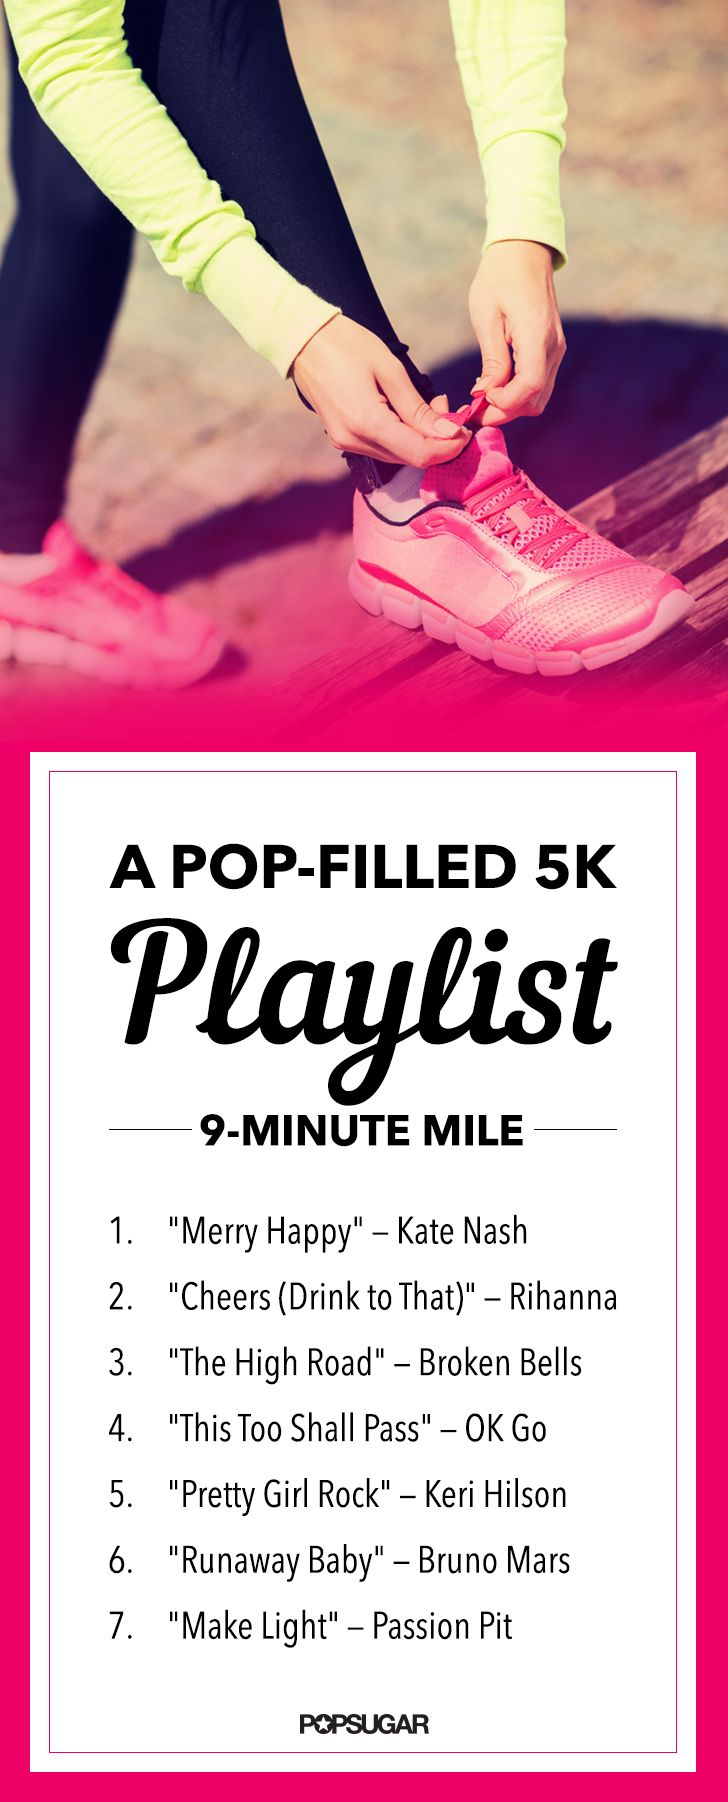 Stay on pace and have fun on your run with our pop-filled 5K playlist — the perfect tempo for a 9-minute mile!